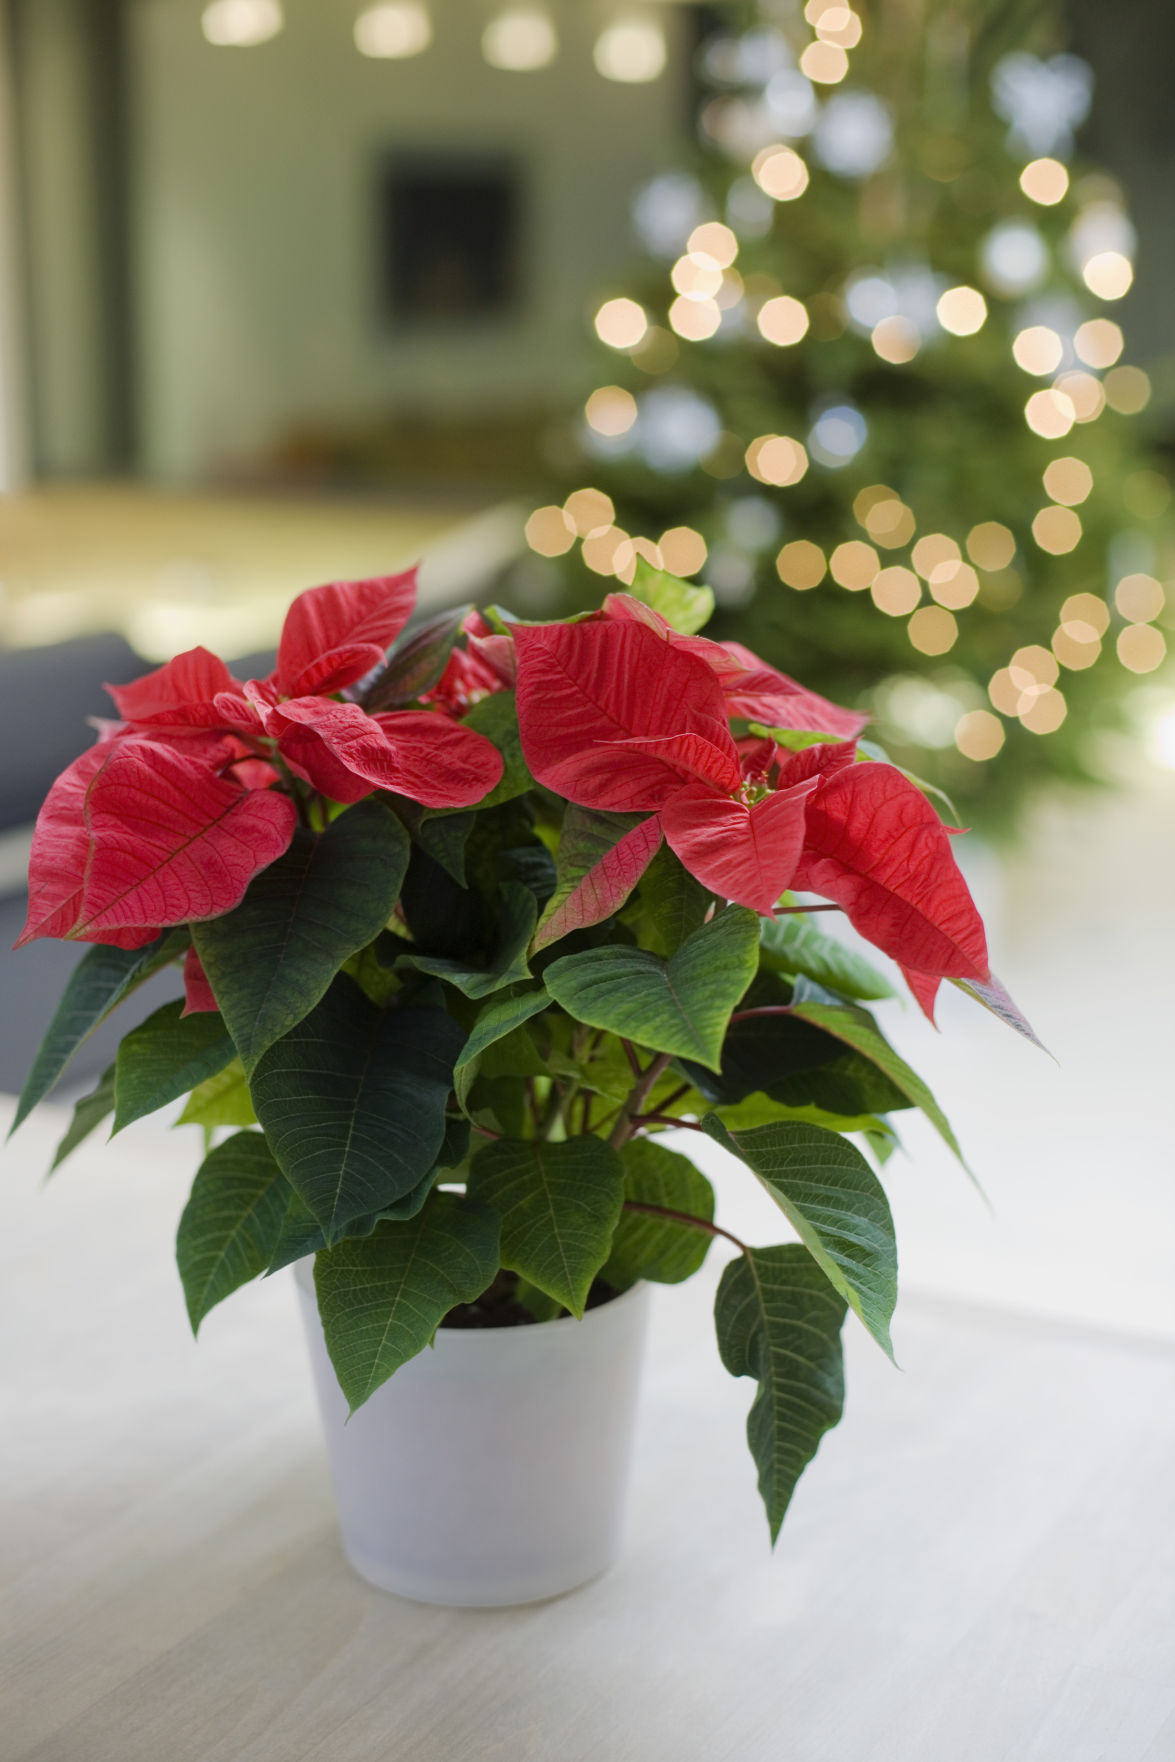 Dirty Fingernails Poinsettias Need Absolute Darkness To Turn Red